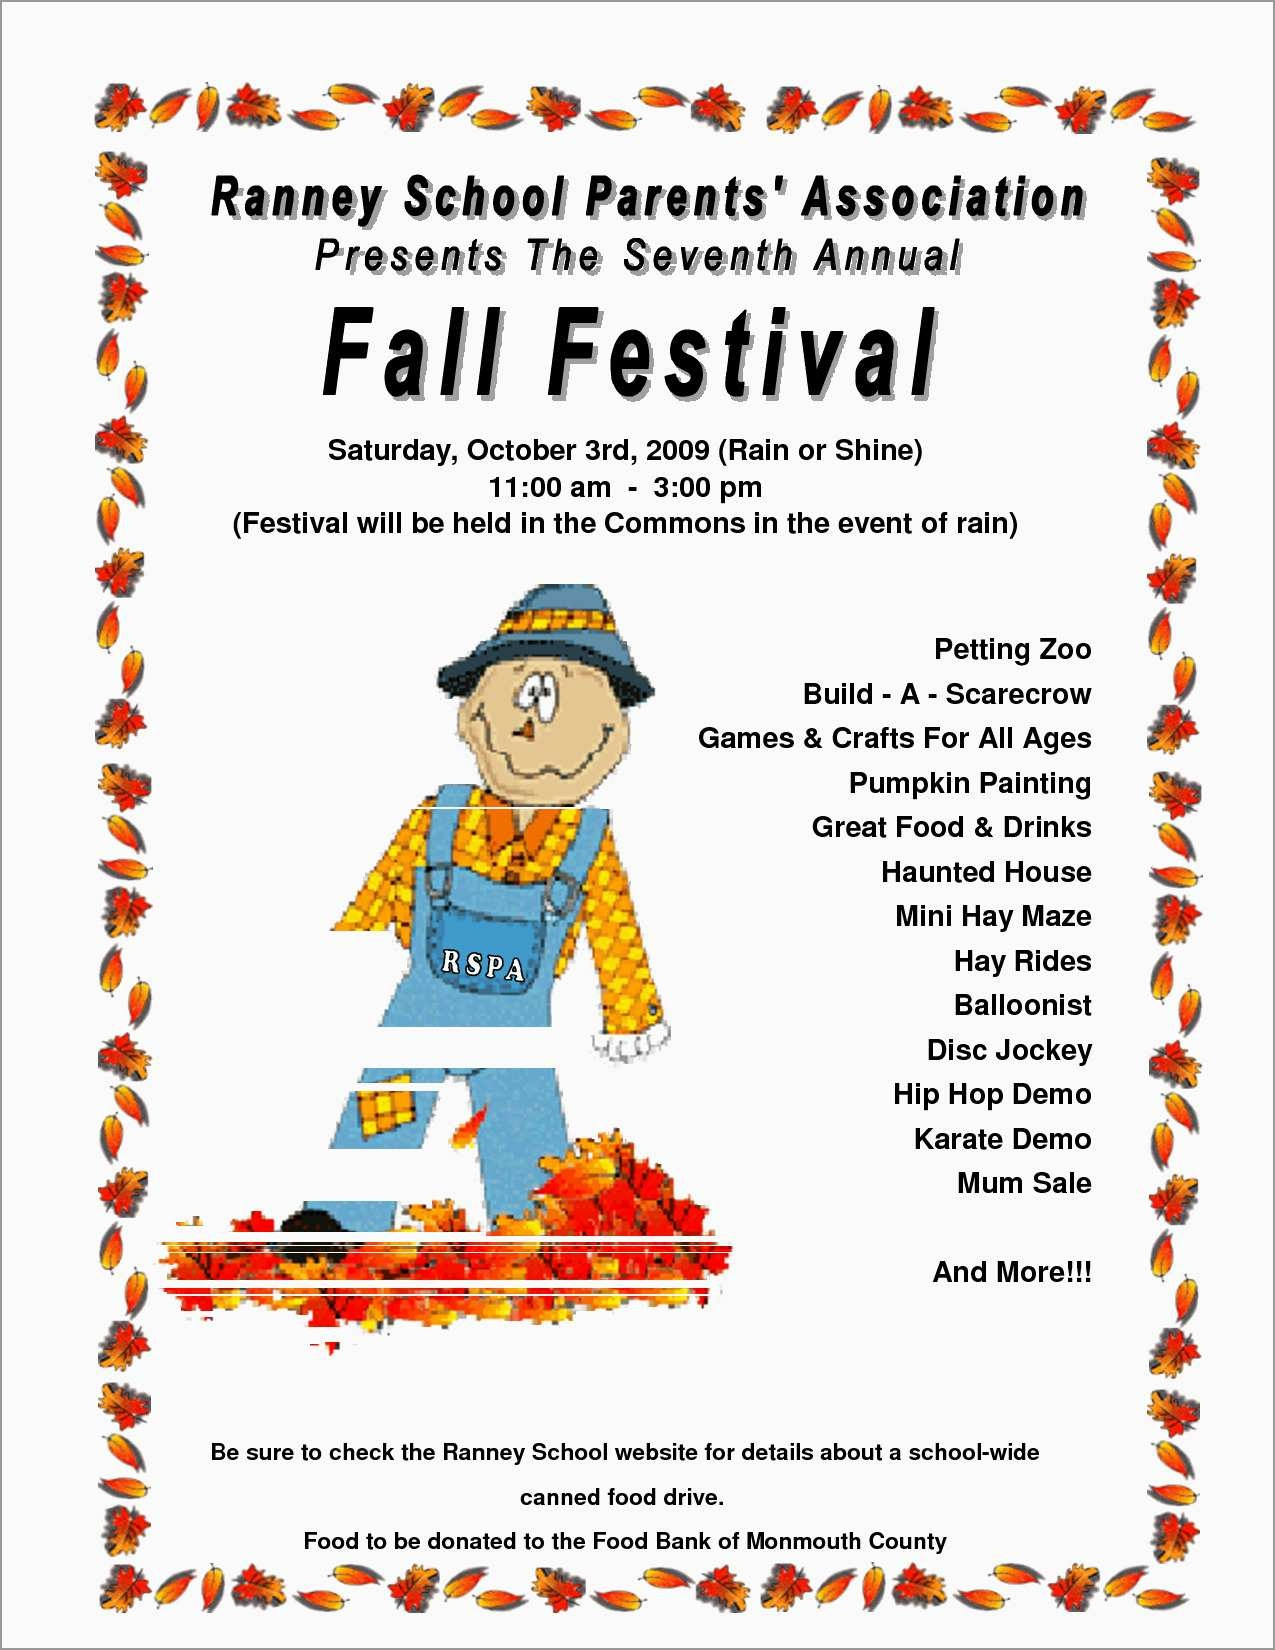 Unique Free Printable Fall Flyer Templates | Best Of Template - Free Printable Fall Festival Flyer Templates